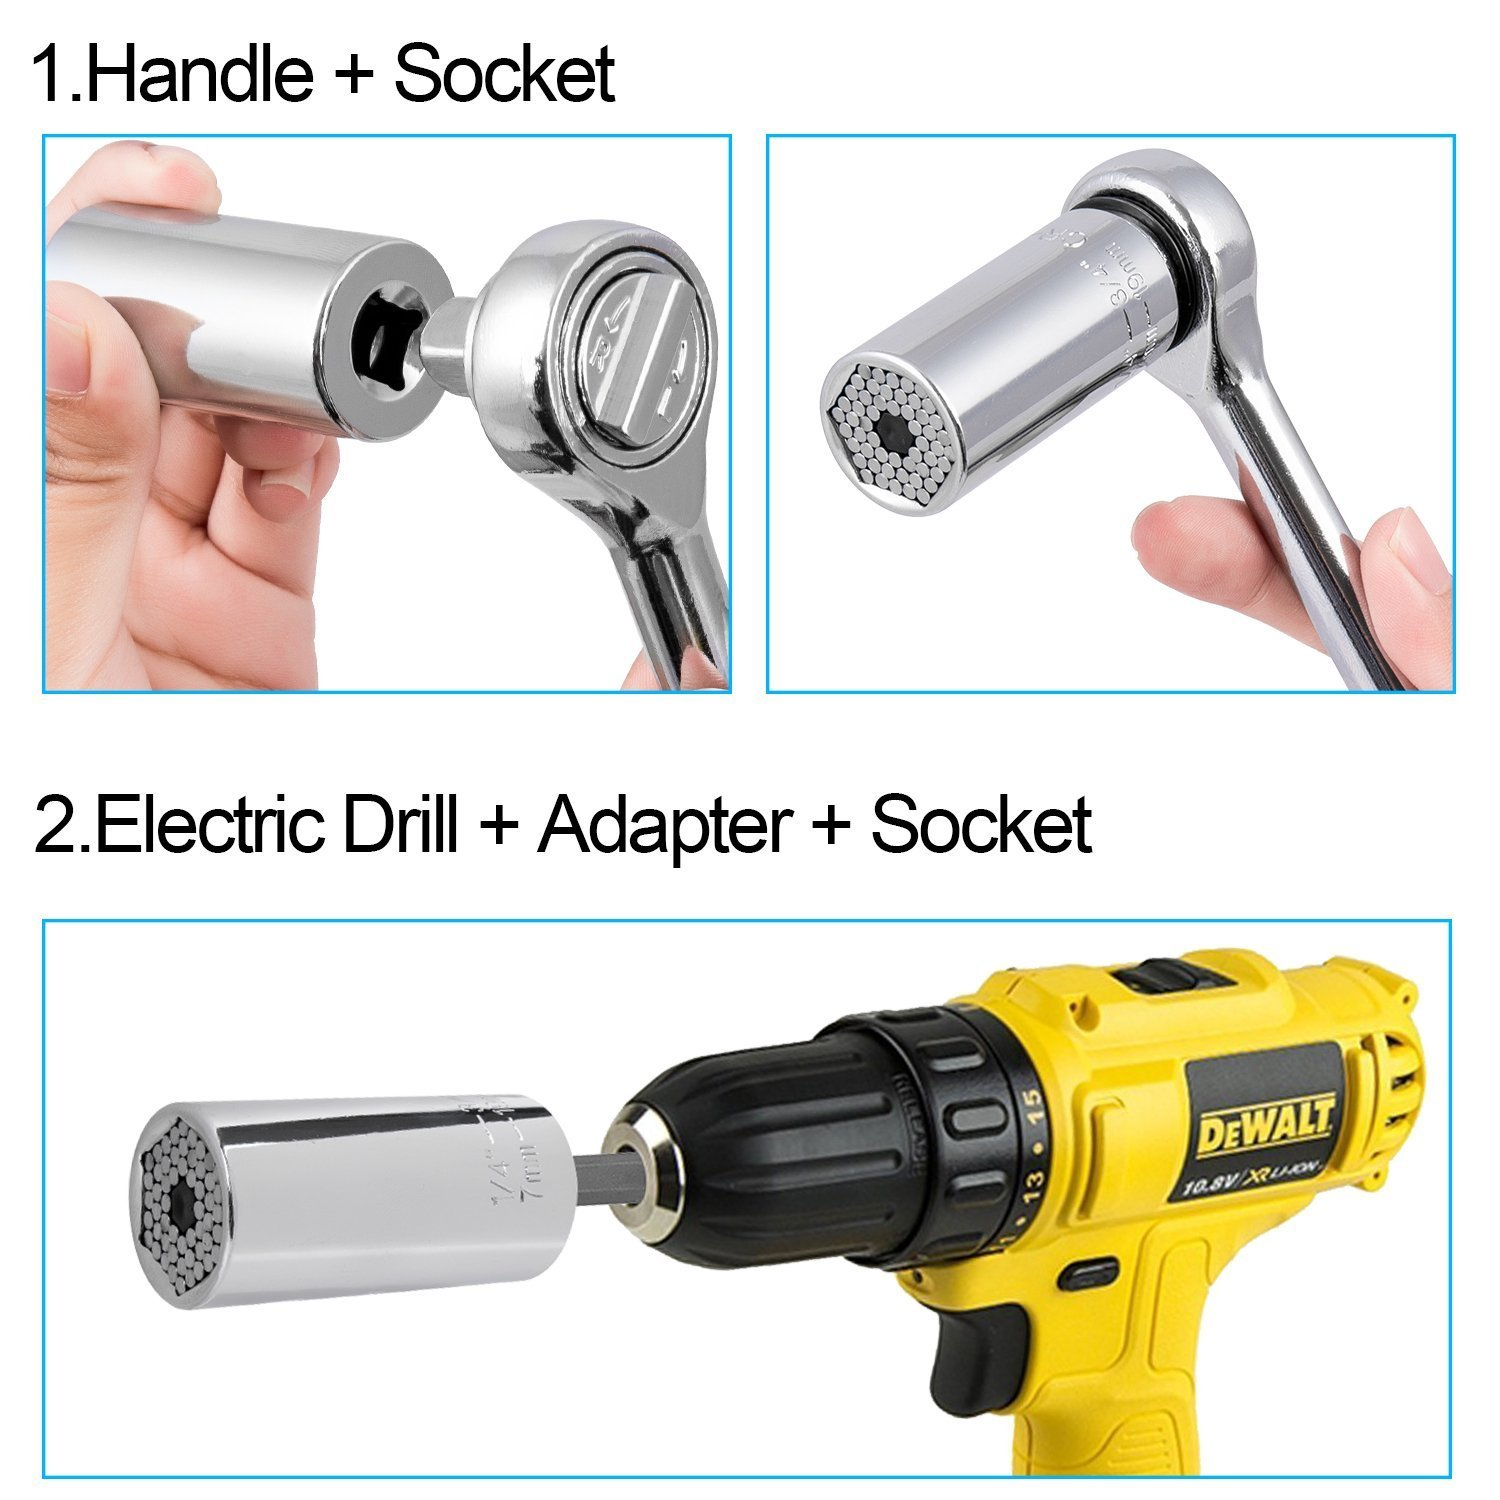 Universal Socket - Zpisf 7-19mm Socket Adapter Grip, Universal Wrench Head Set Socket Sleeve with Power Drill Adapter, Professional Magic Multi Bicycle Car/Auto Repair Hand Tools by Zpisf (Image #4)